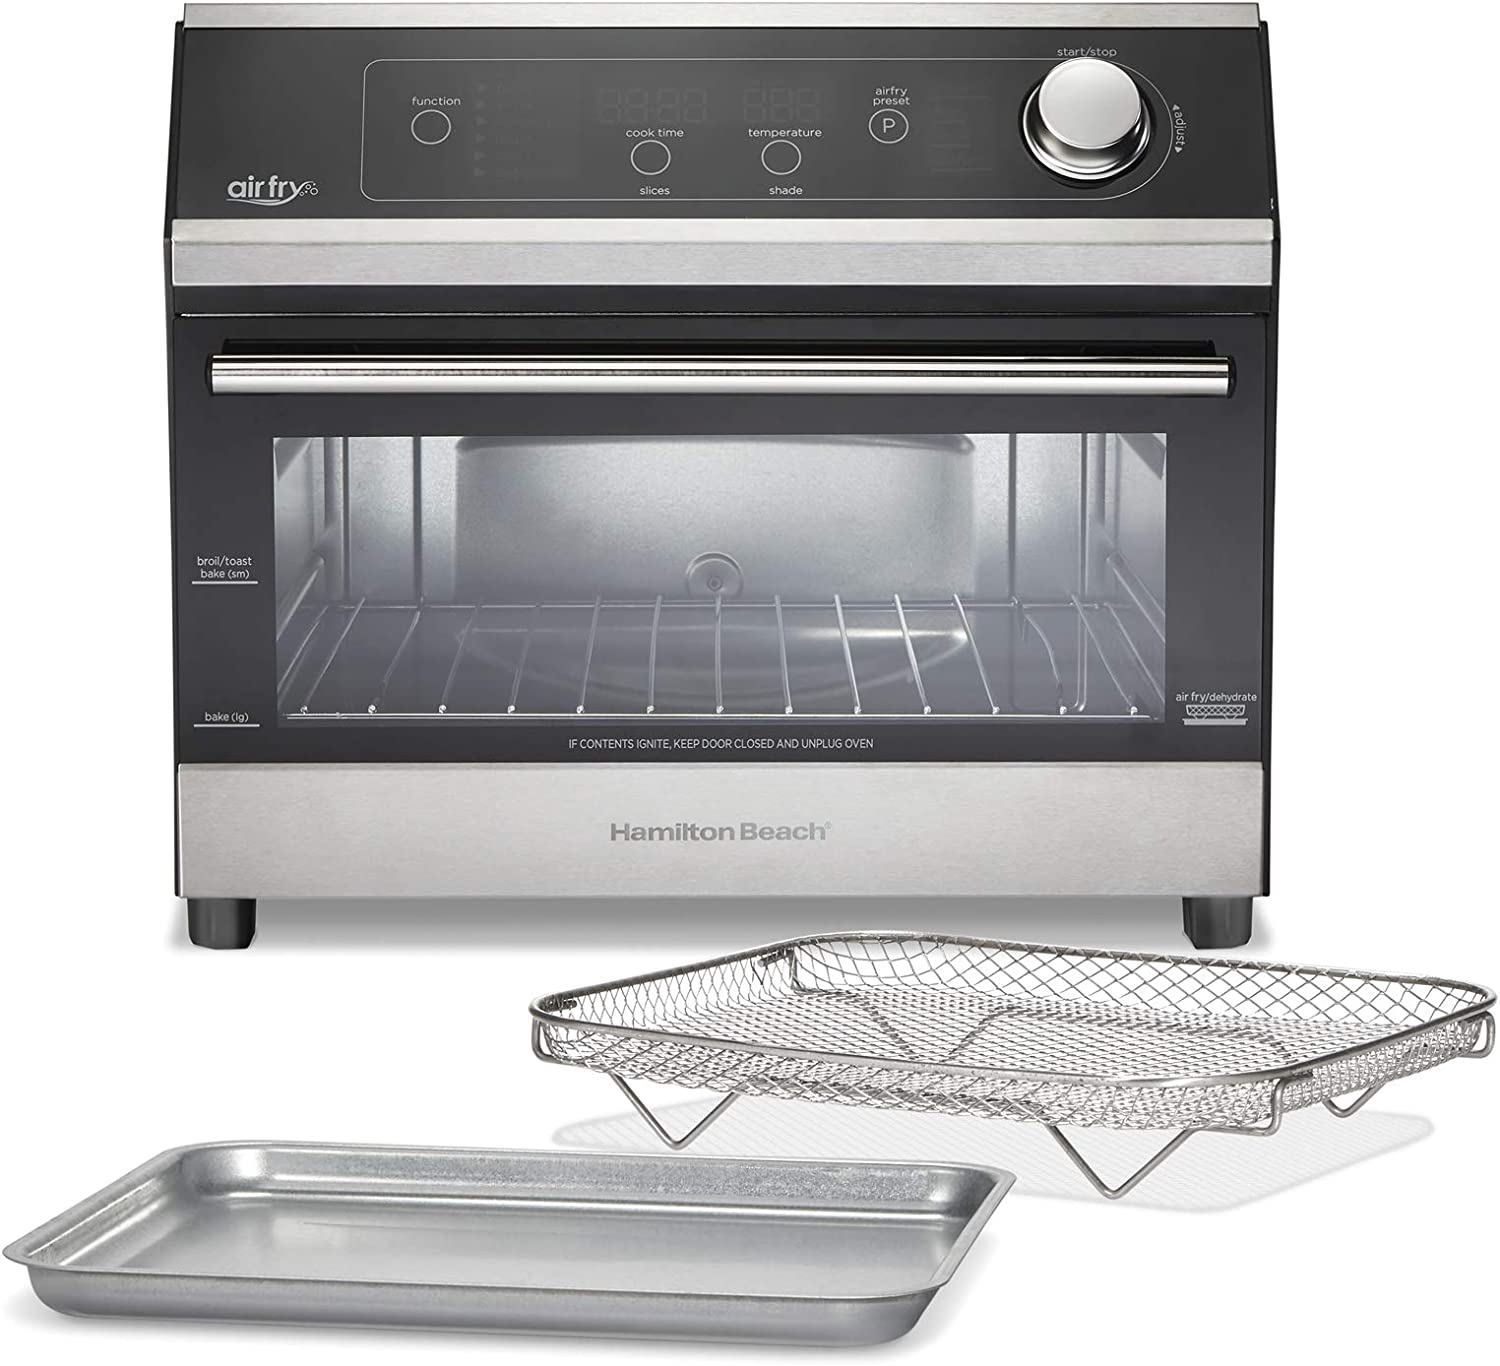 """Hamilton Beach 10-in-1 Digital Air Fryer Toaster Oven, Fits 12"""" Pizza or 6 Slices of Toast, 1800W, Black and Stainless Steel (31220)"""